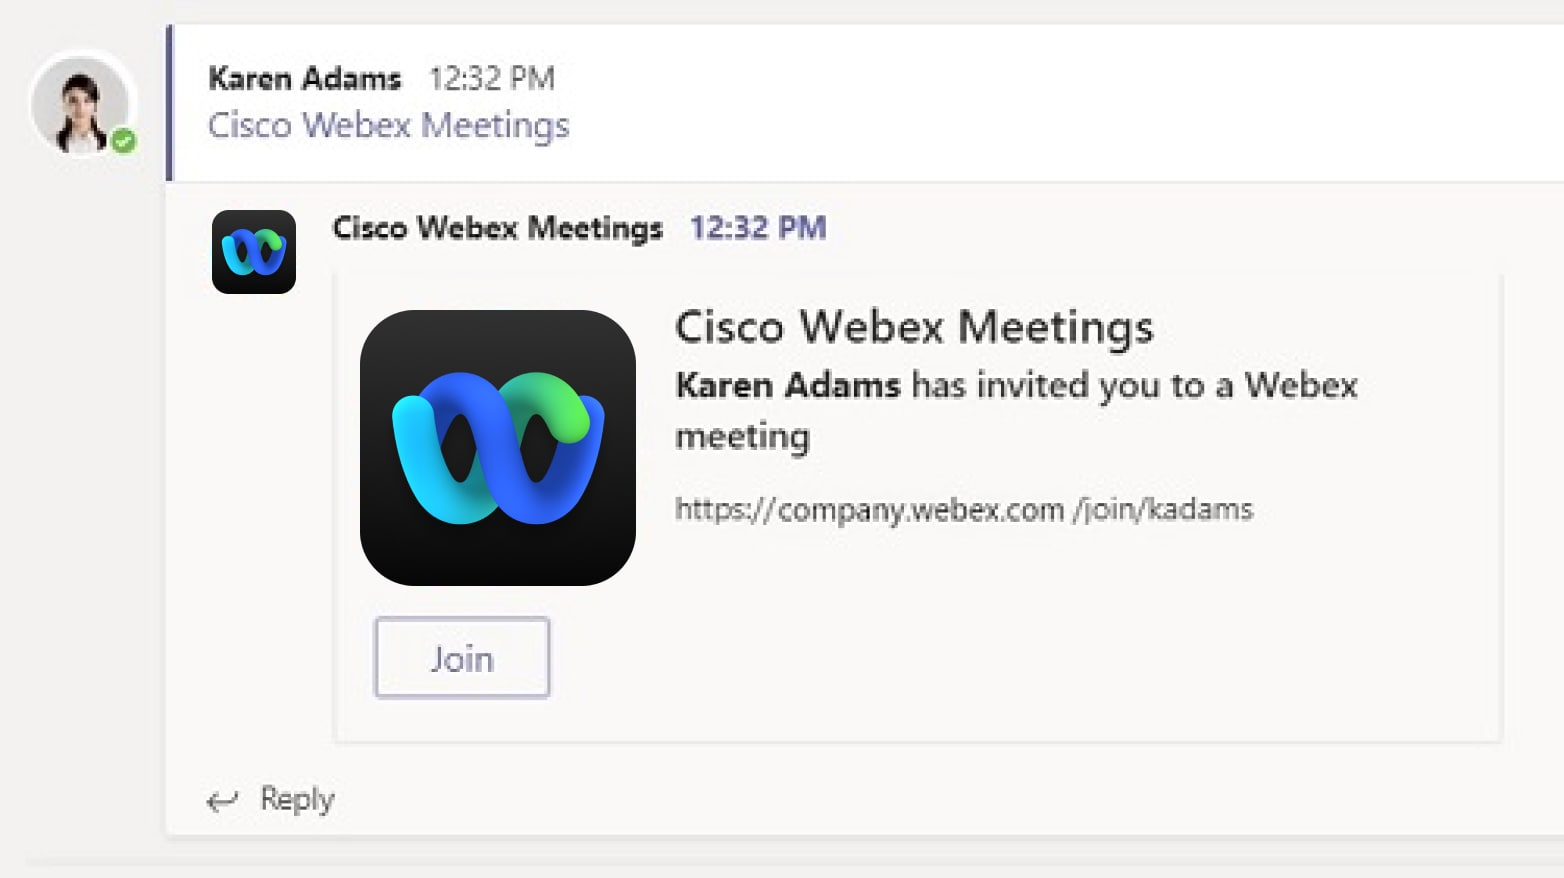 Join the Cisco Webex meeting